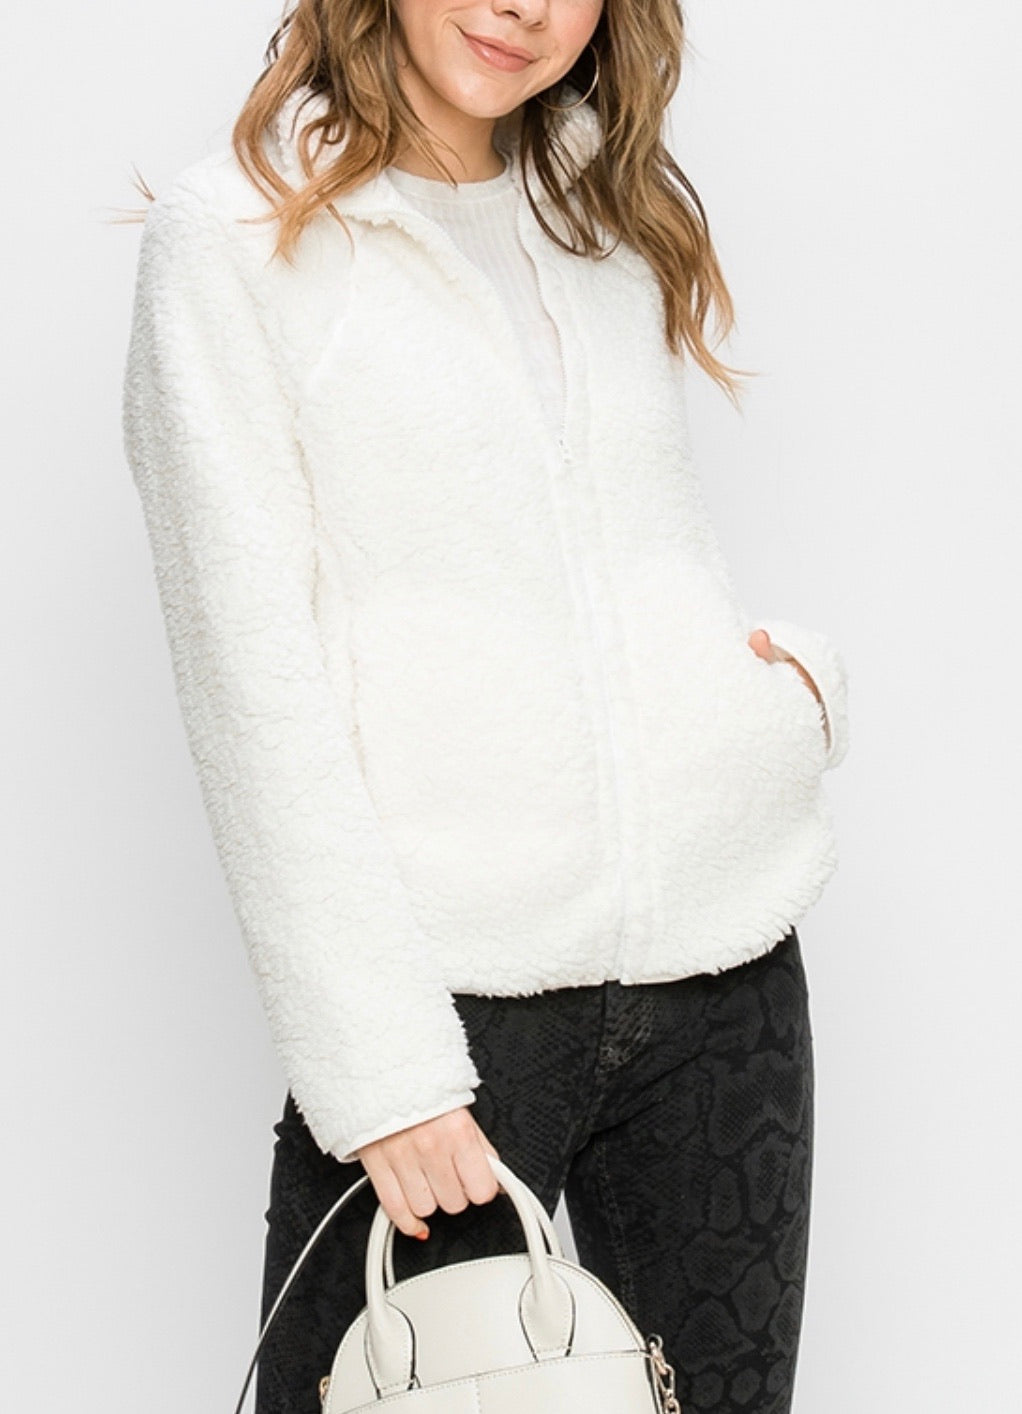 Uptown Sherpa Fleece Jacket - Cream